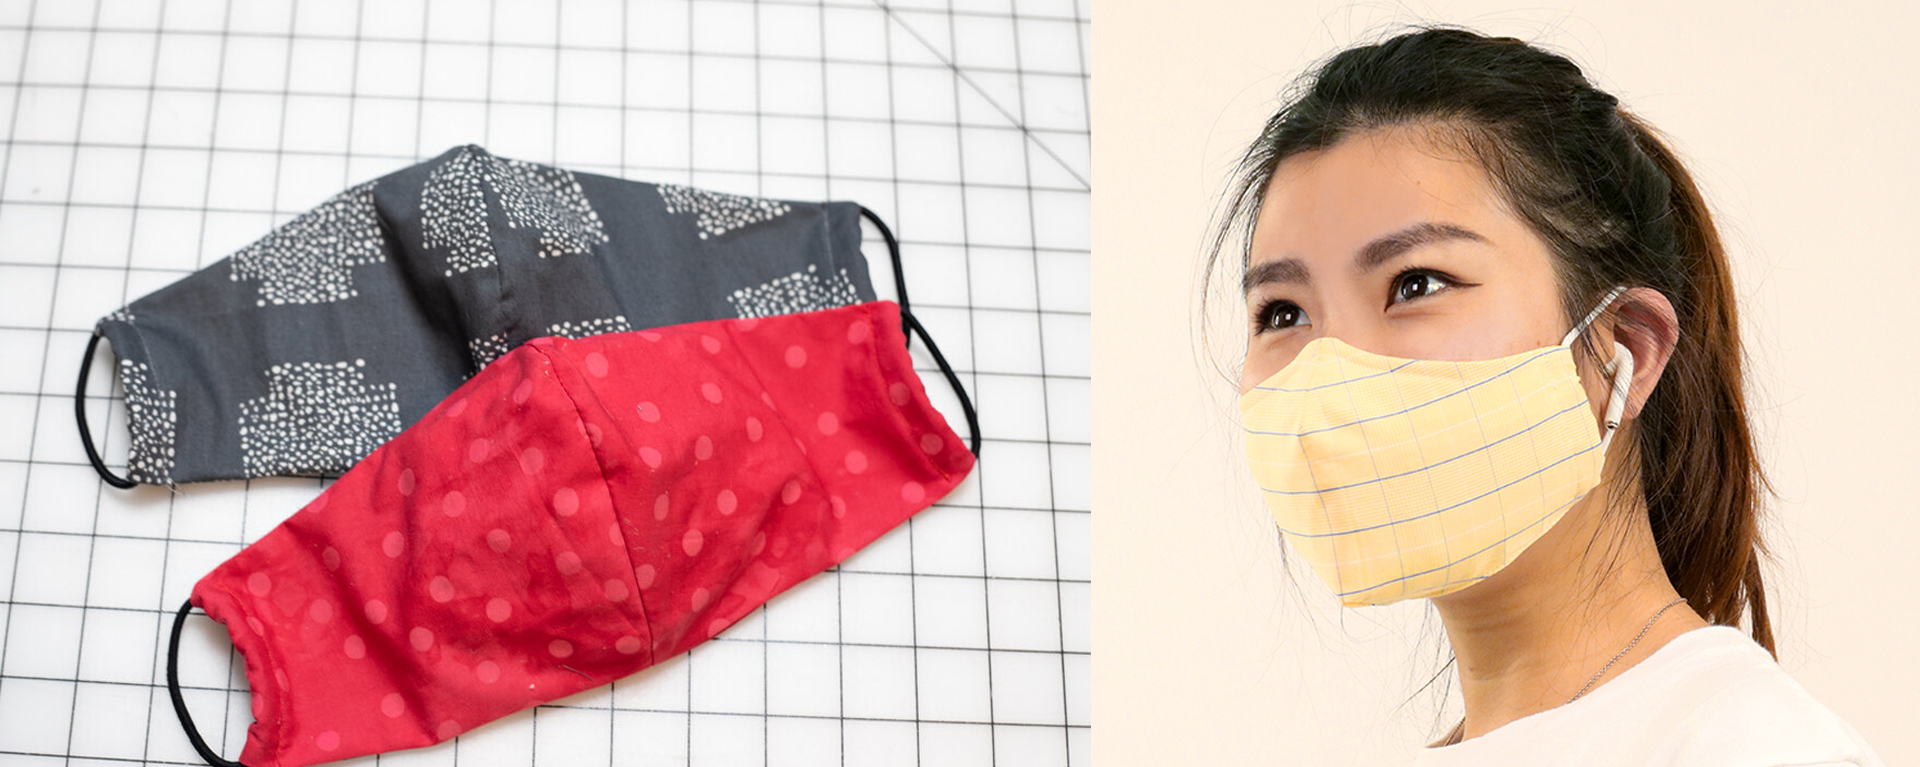 how to make cloth mask how to make fabric mask anti covid masks supplier singapore copy